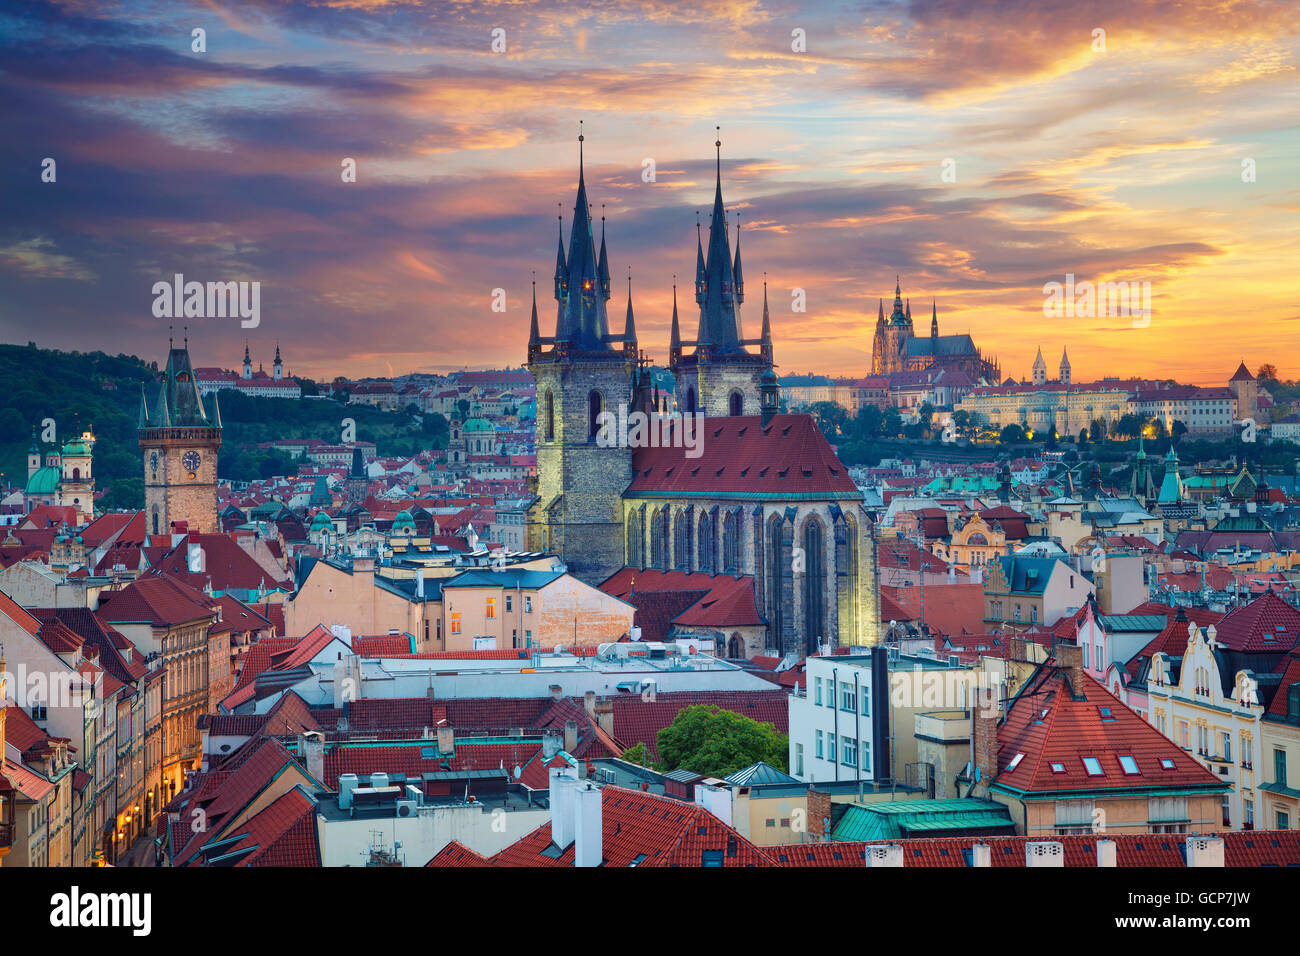 Prague. Image of Prague, capital city of Czech Republic, during dramatic sunset. - Stock Image